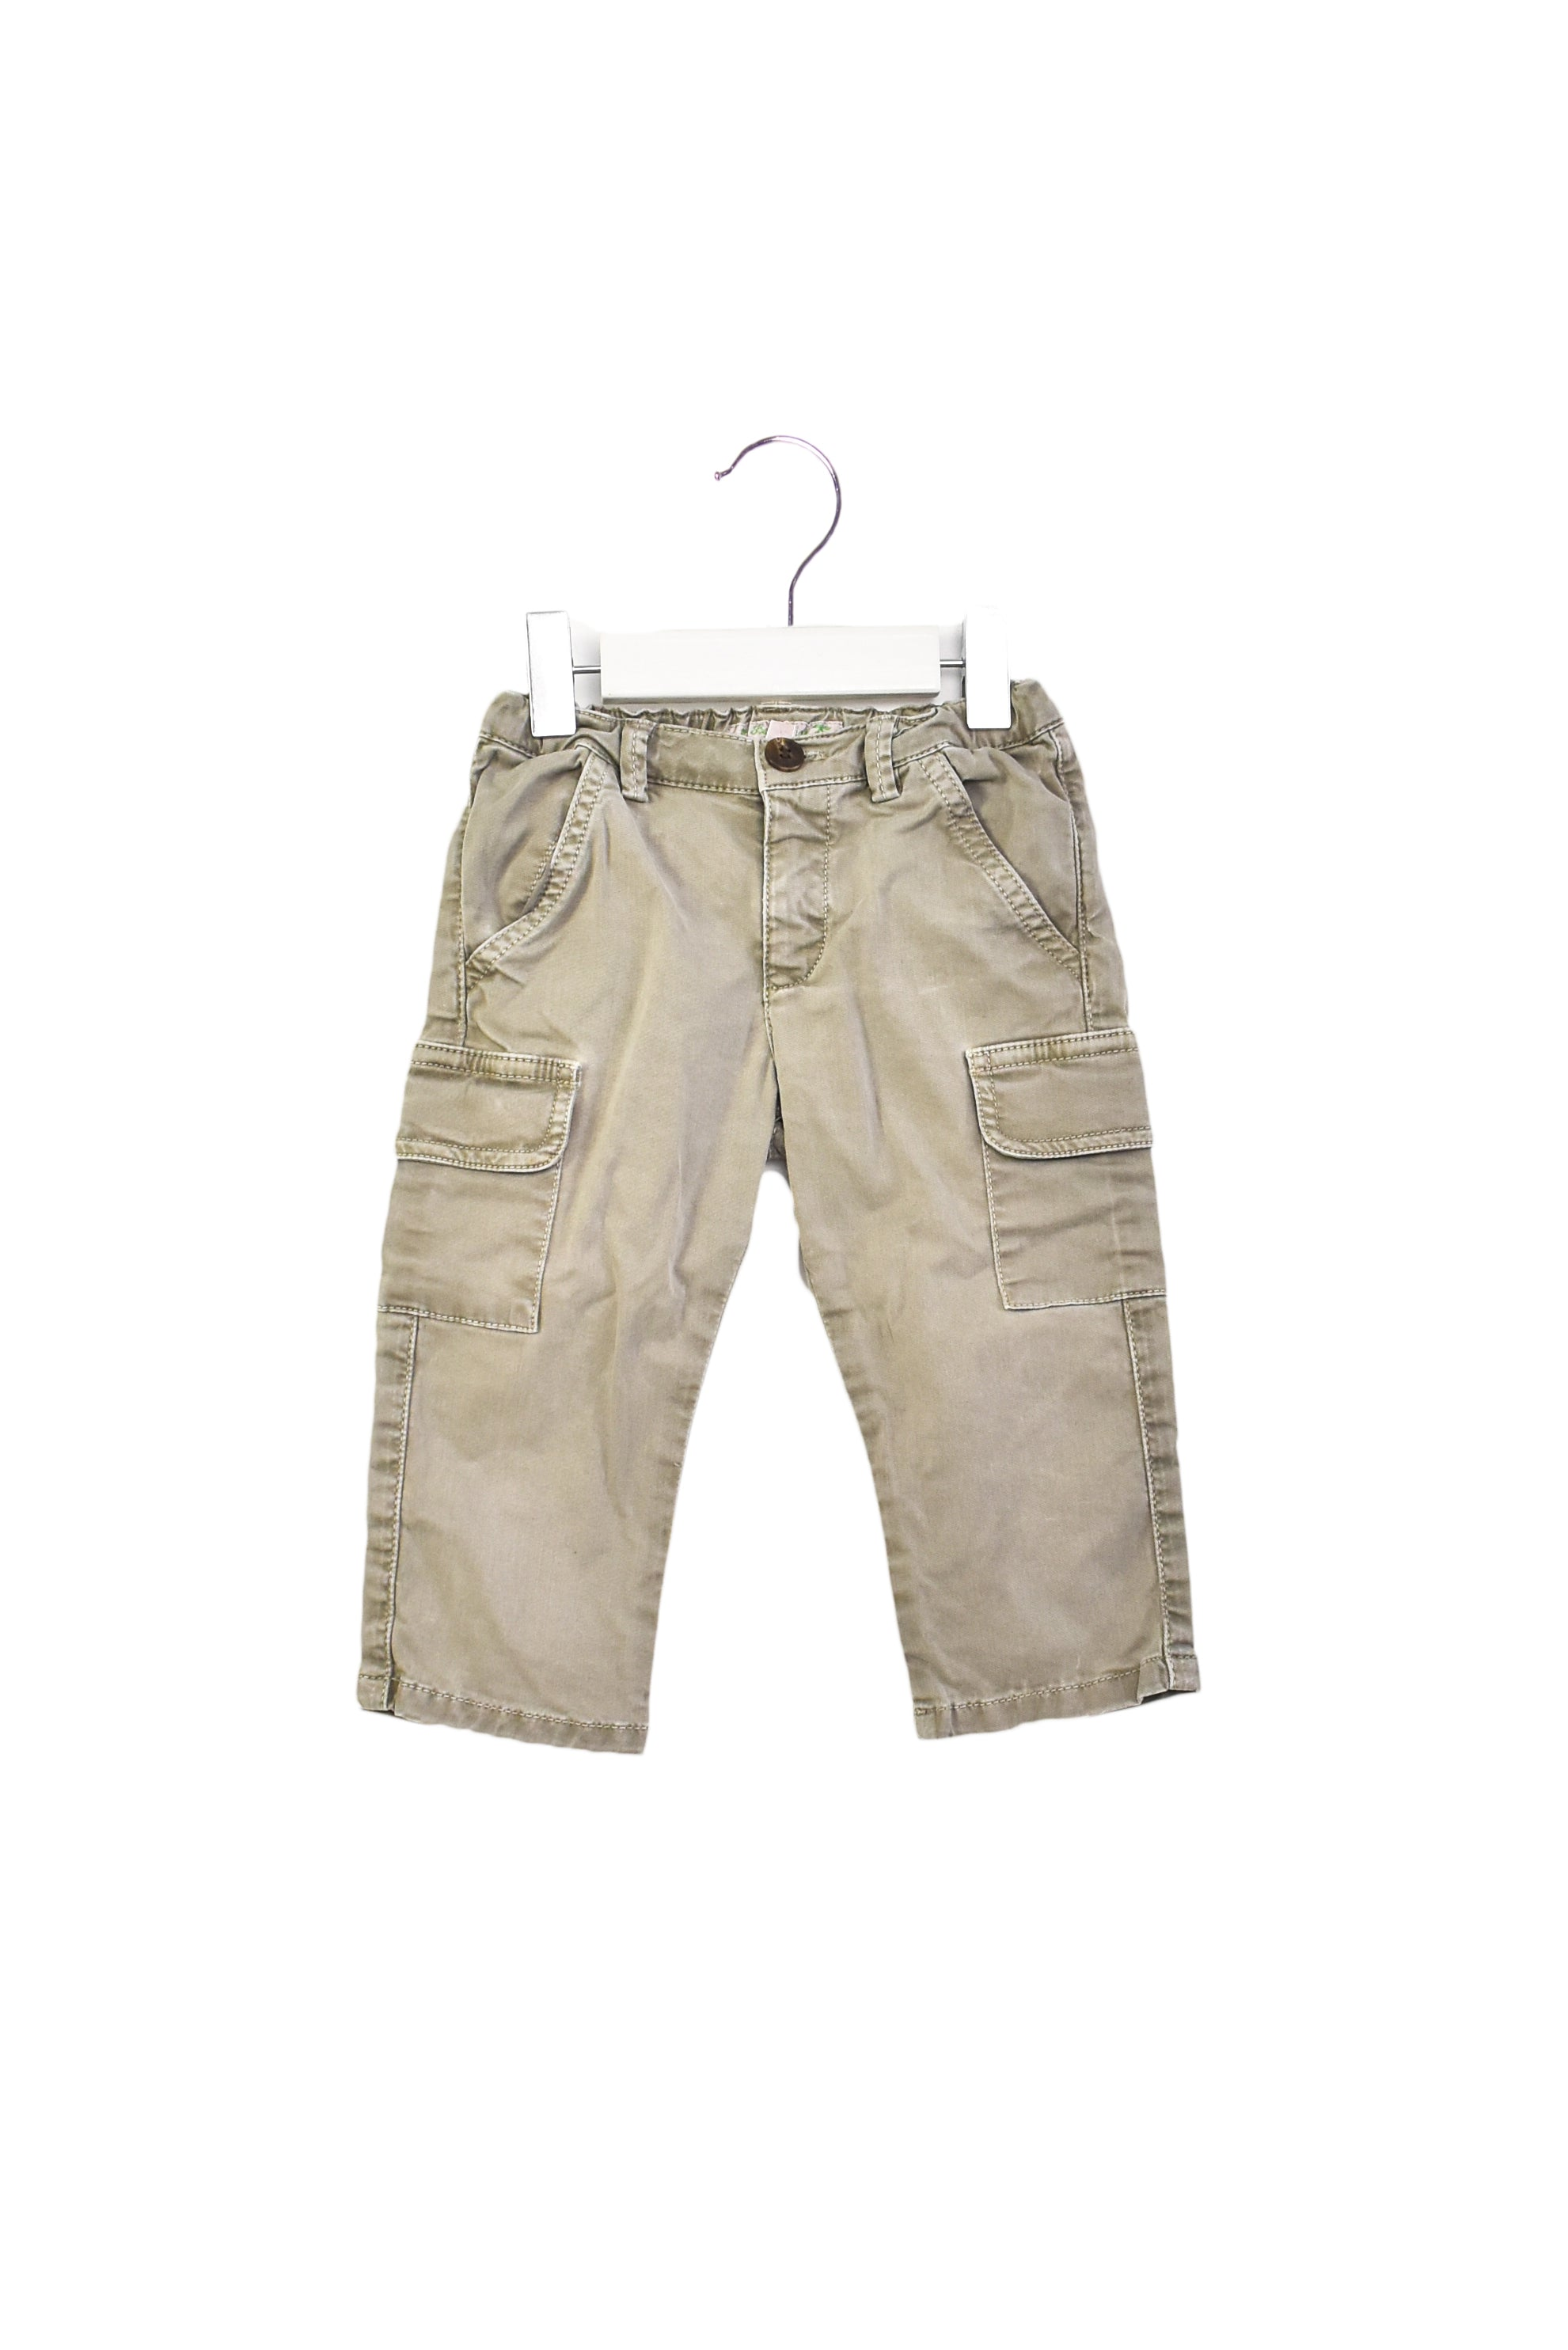 98625fcd3 10013488 Bonpoint Baby~Jeans 12M at Retykle